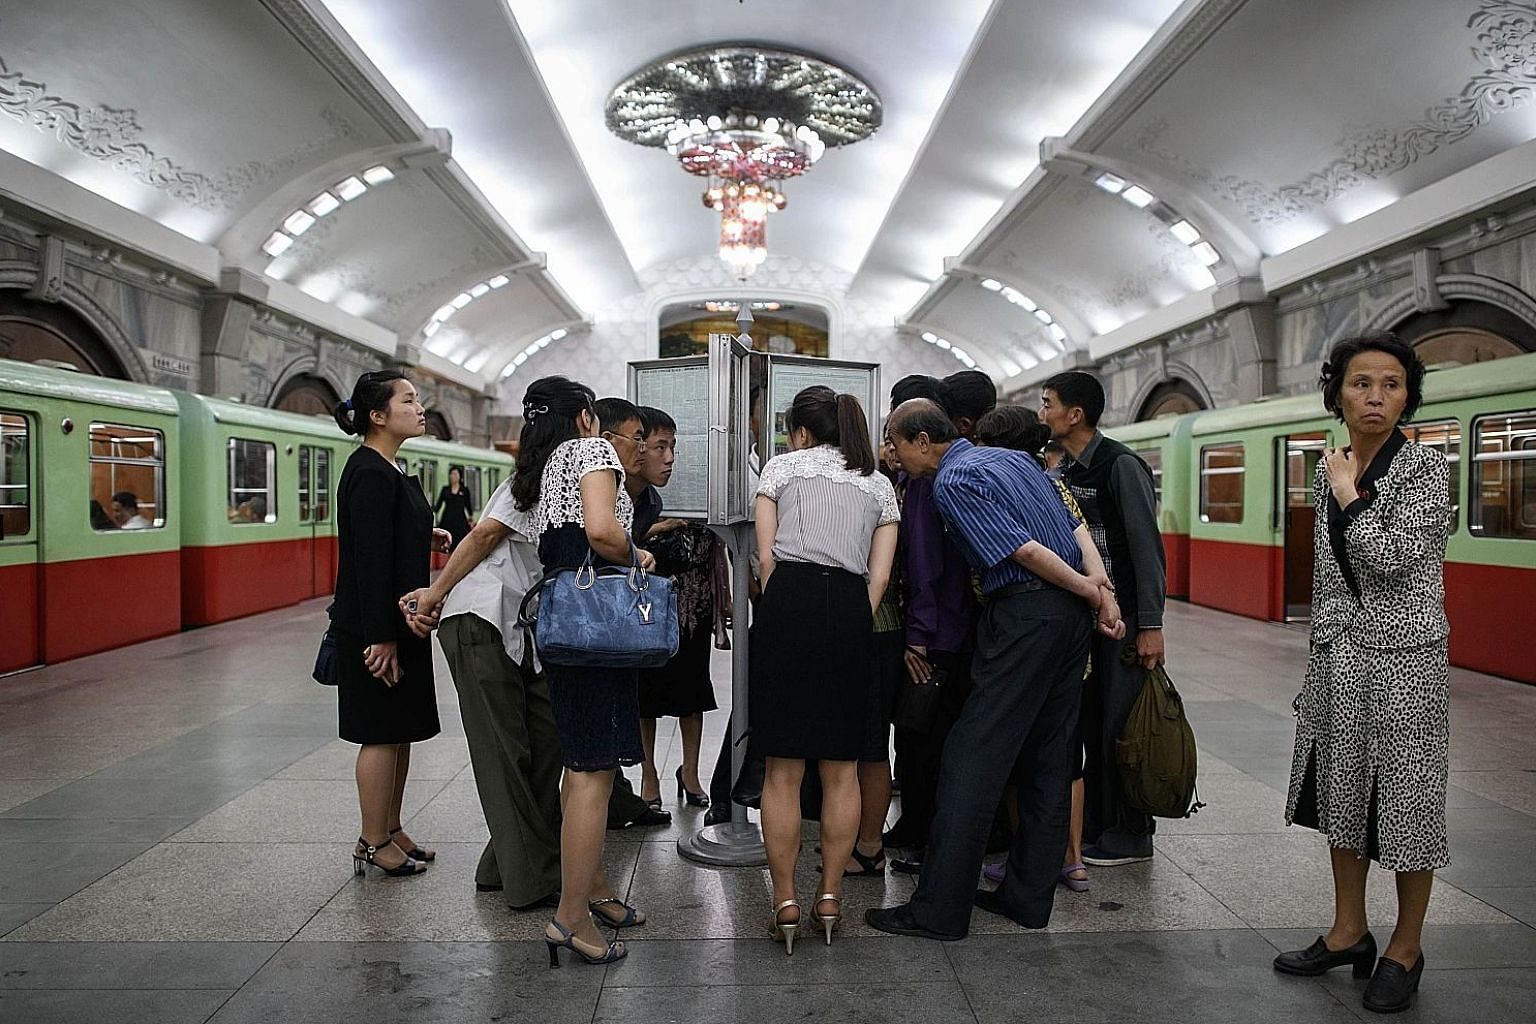 Commuters on a subway platform in Pyongyang, North Korea, reading yesterday's edition of the Rodong Sinmun newspaper, which featured images of North Korean leader Kim Jong Un meeting US President Donald Trump at their summit in Singapore on Tuesday.